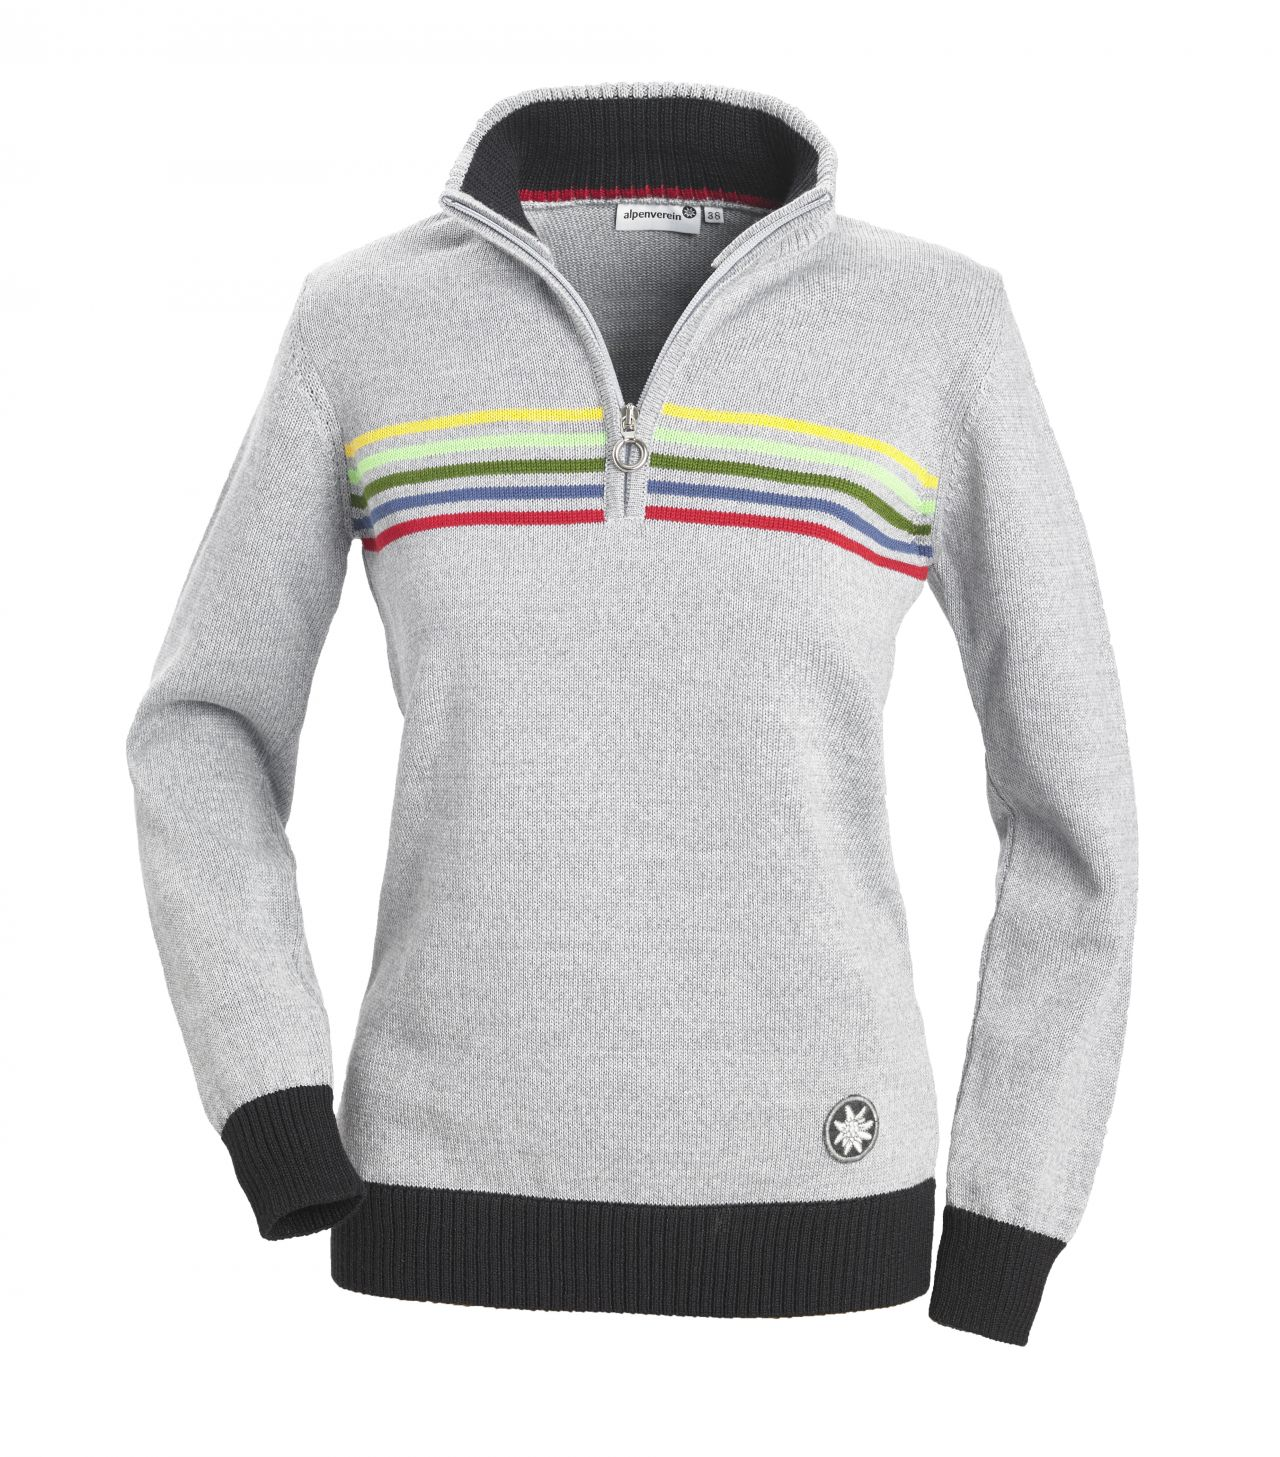 Strickpulli Damen |Troyer